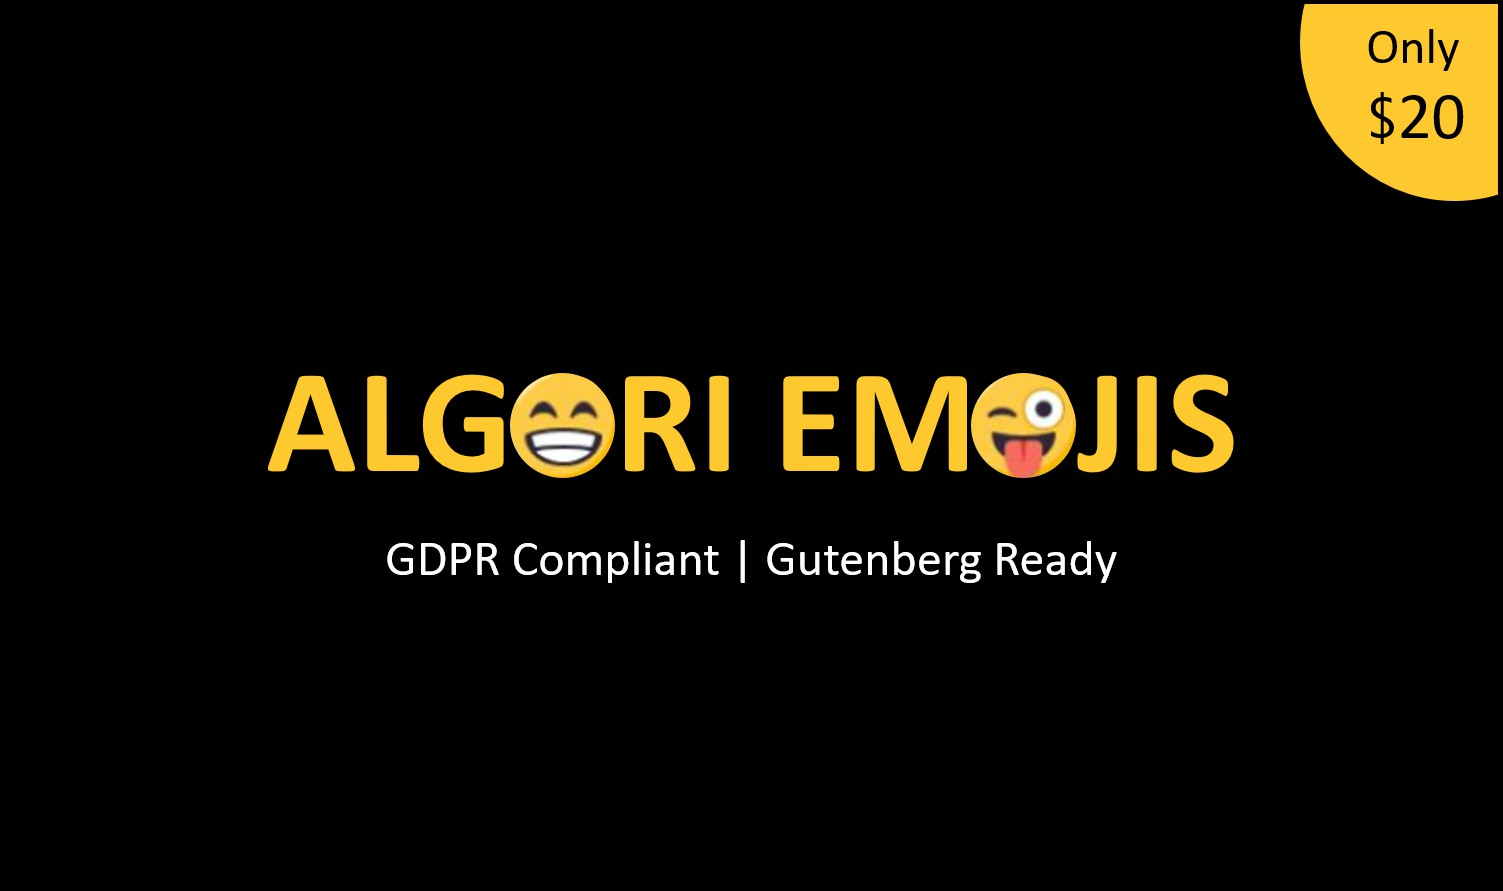 Algori Emojis for WordPress Gutenberg